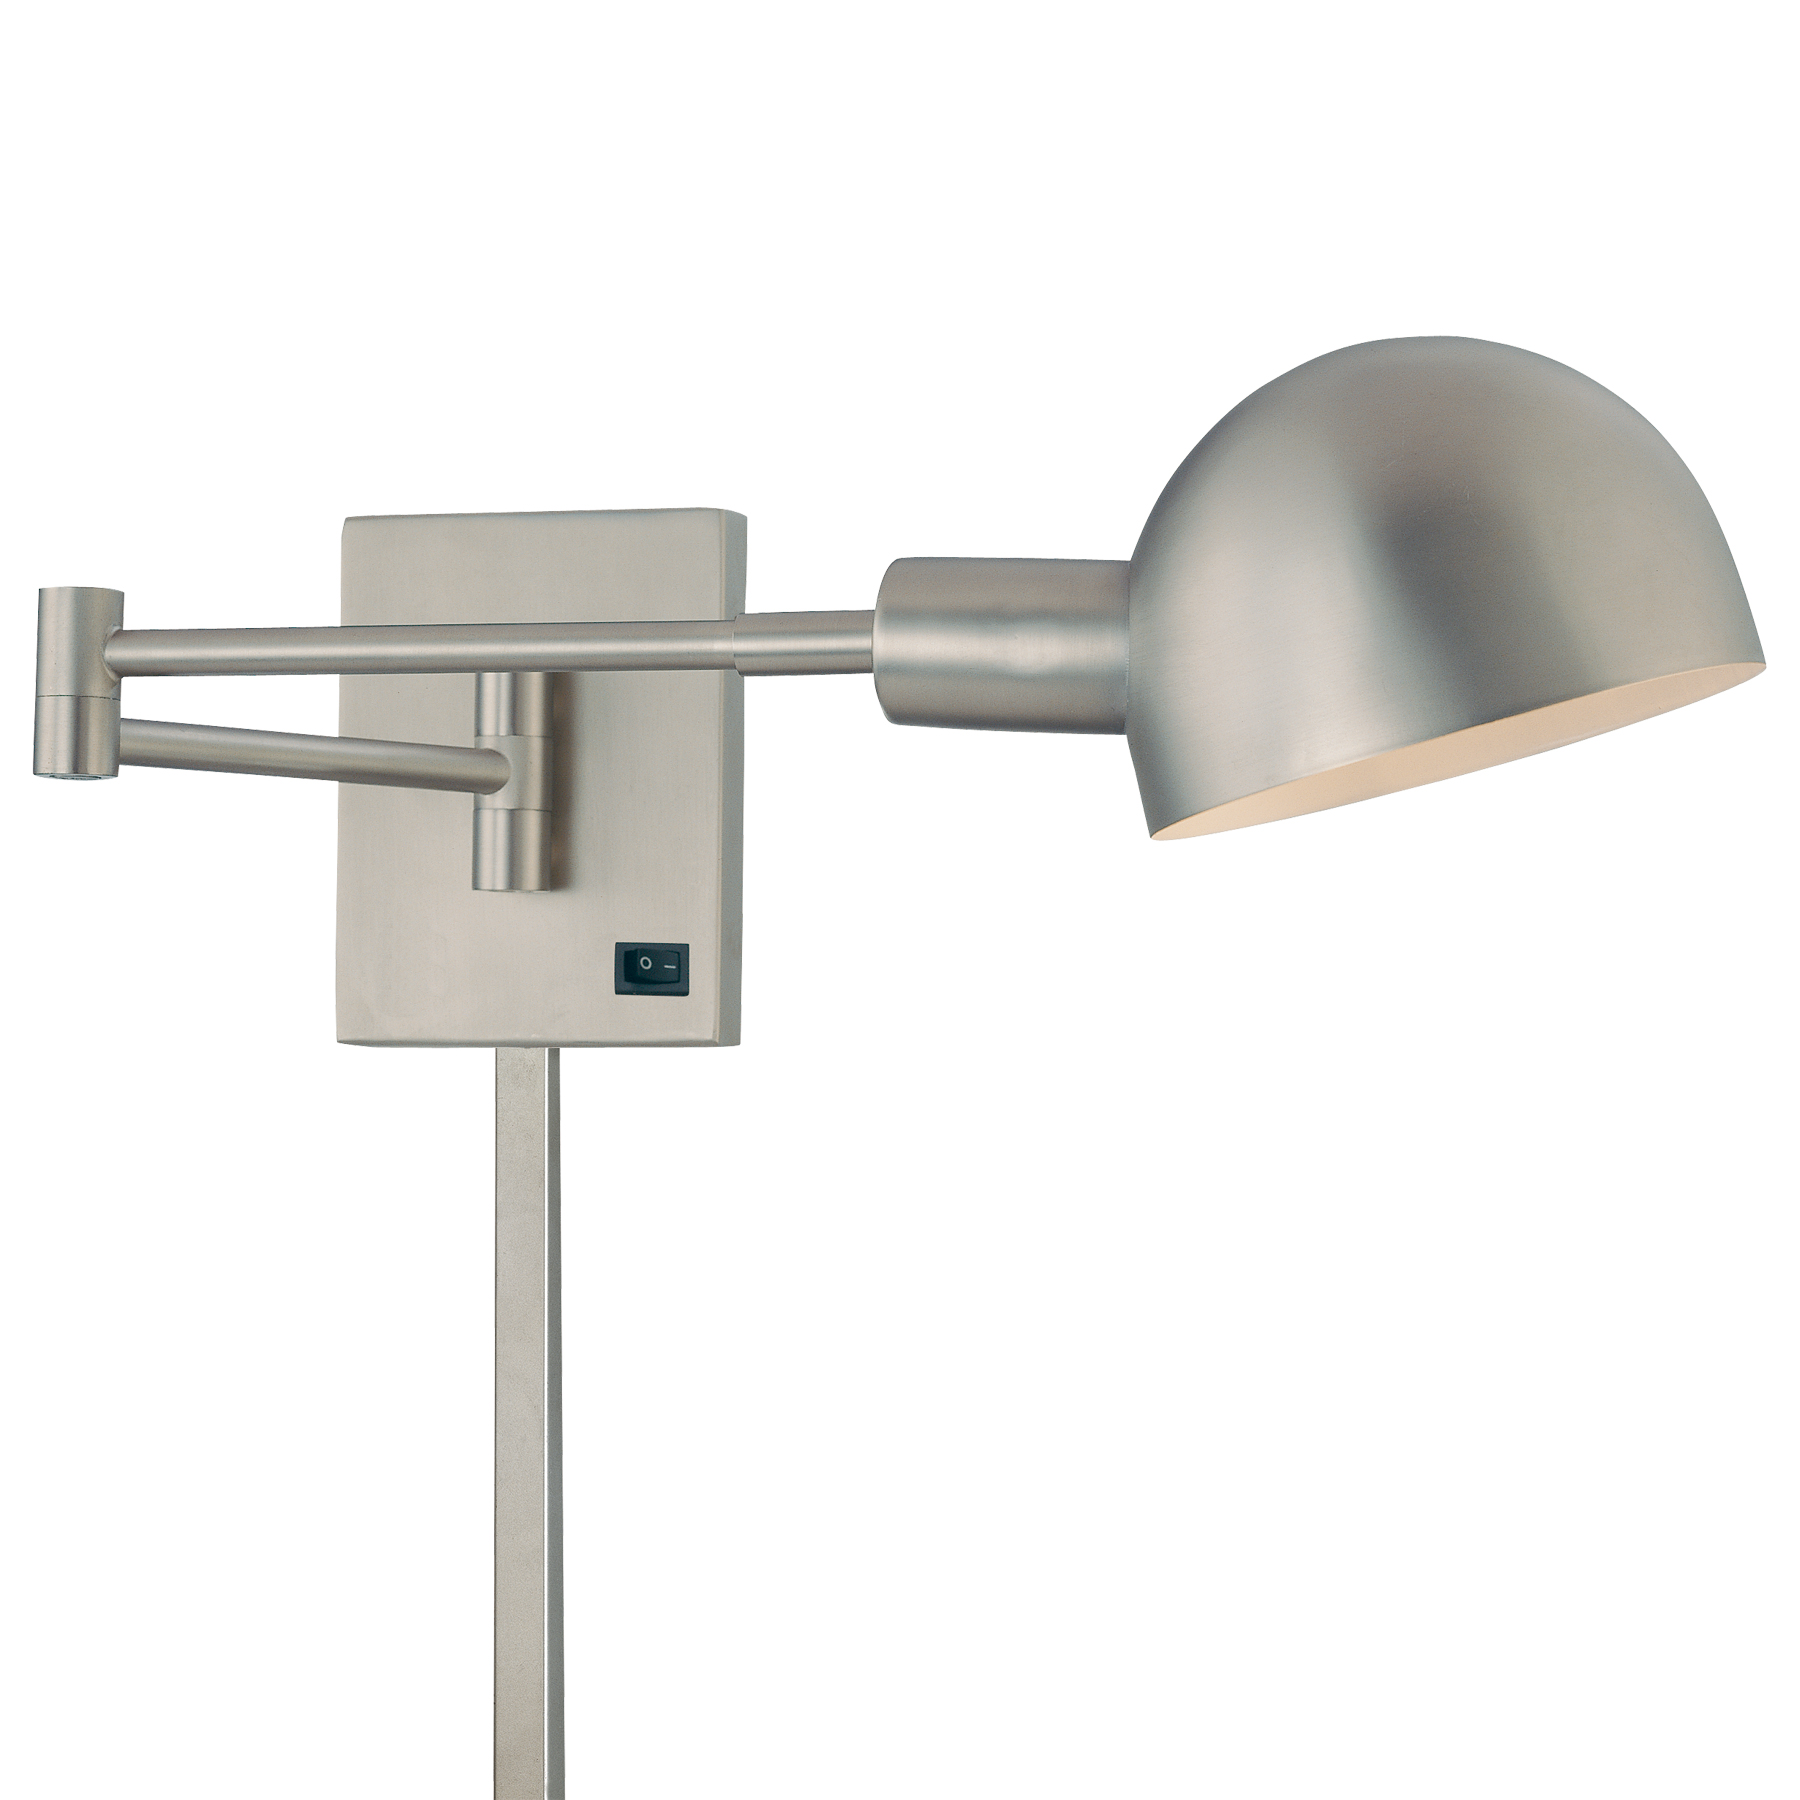 Wall Swing Arm Lamps Plug In Swing Arm Wall Lamp Plug In 25 Convincing Reasons To